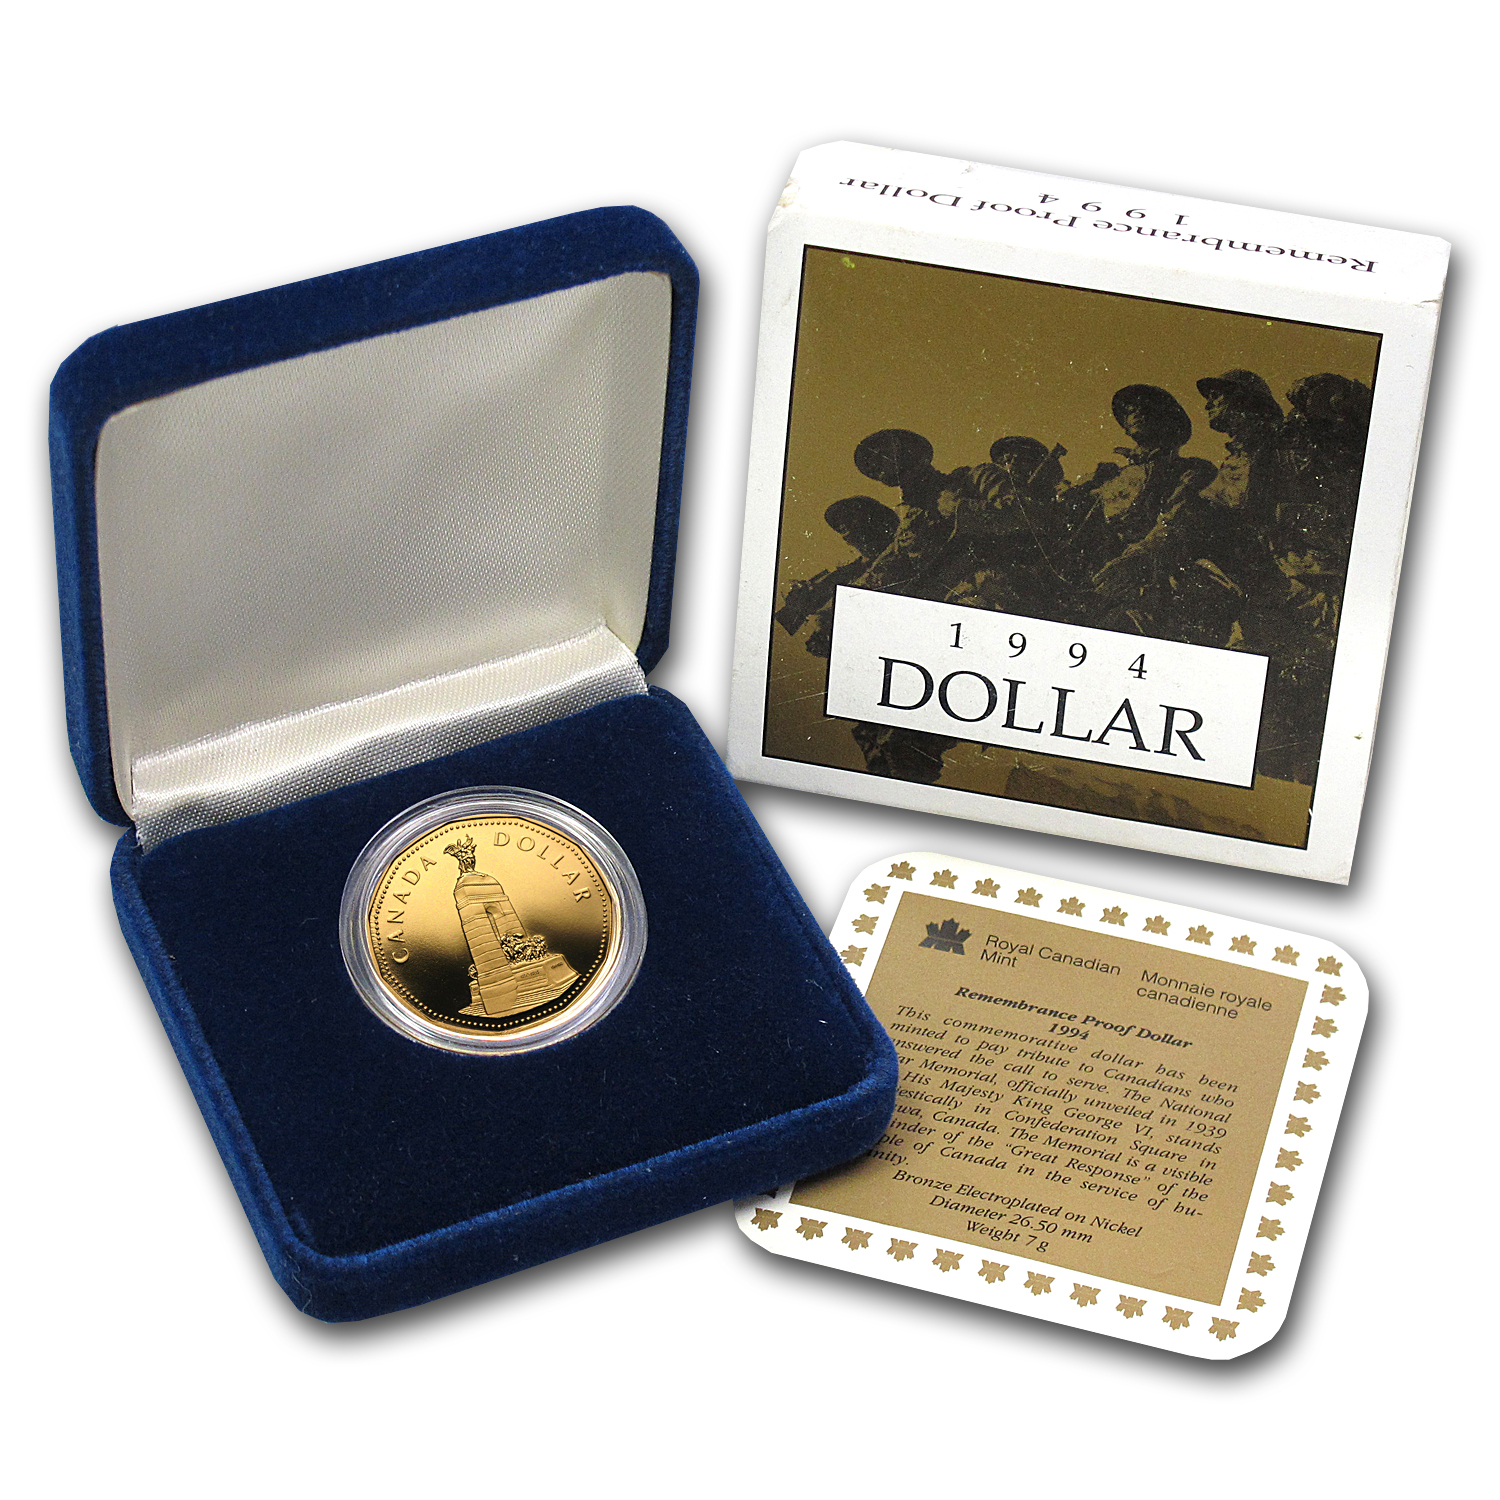 1994 Canadian Rememberance Dollar Proof (Bronze Electroplate)